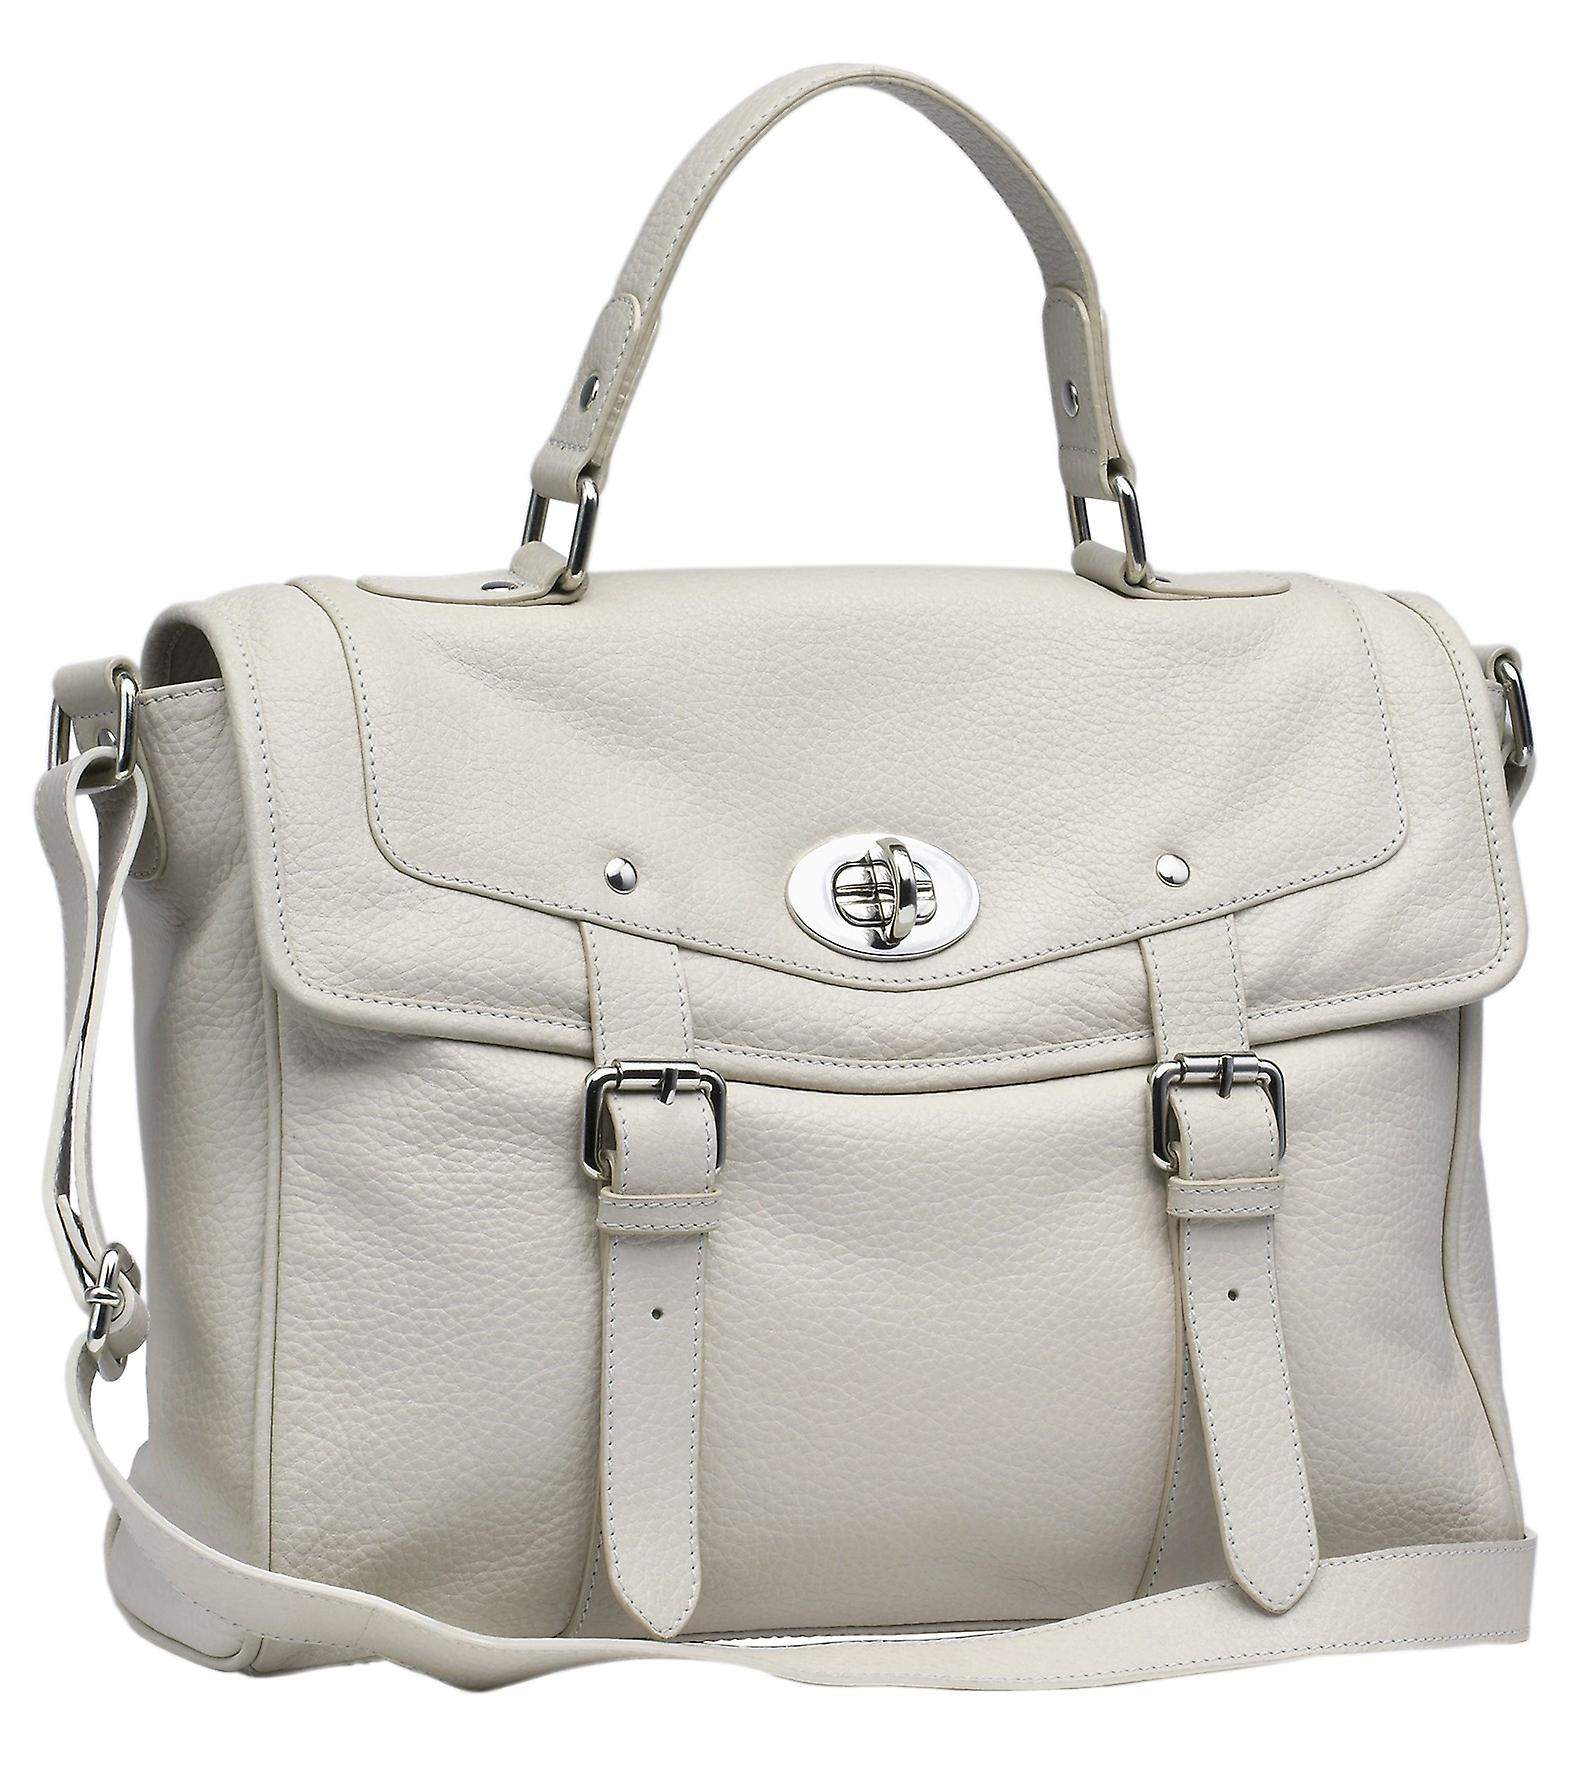 Burgmeister ladies bag T215-215B leather stone